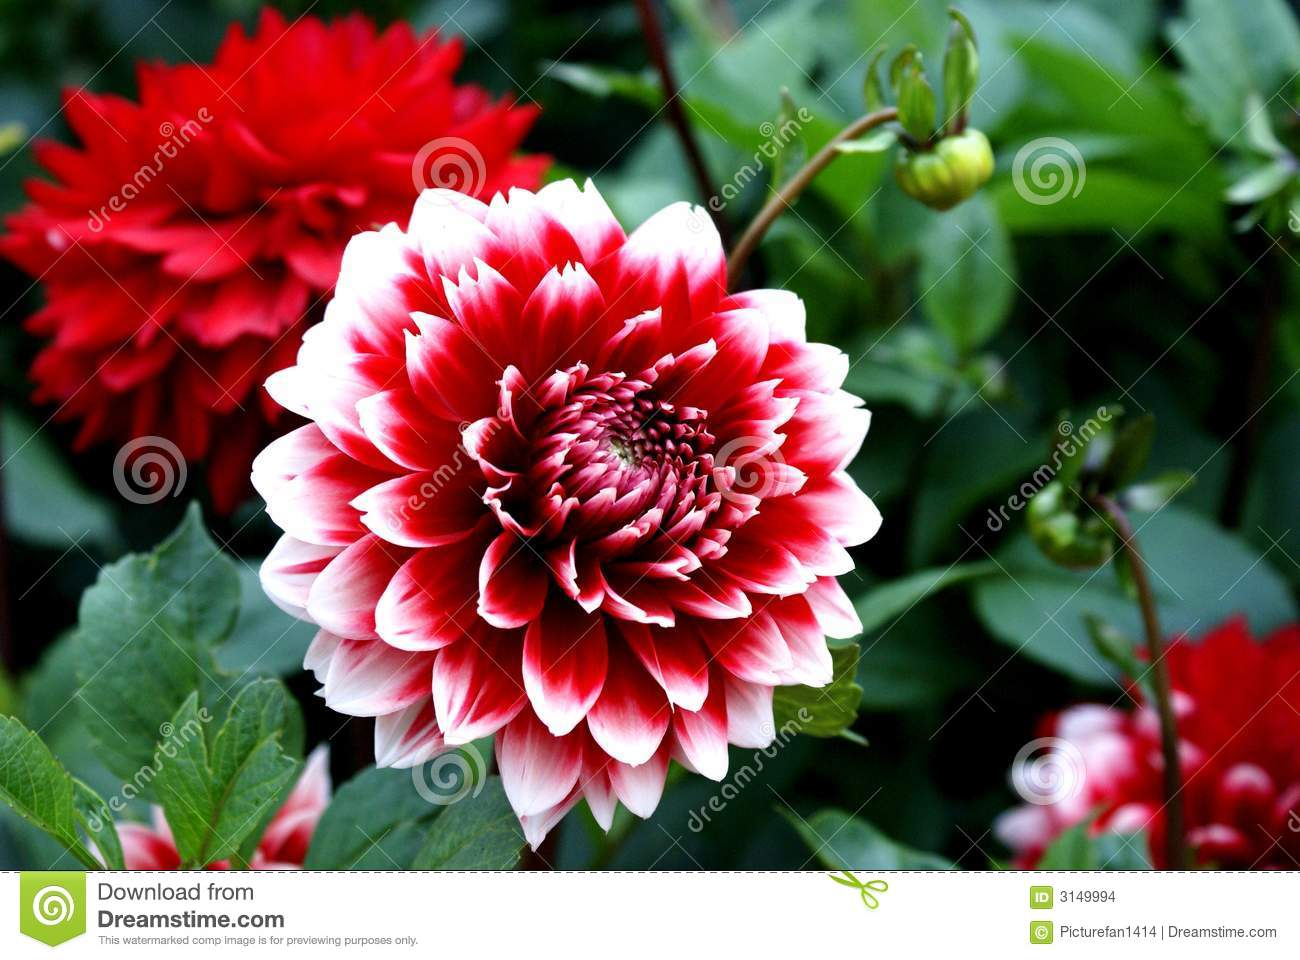 dahlia flower stock photos, images, & pictures - 14,461 images